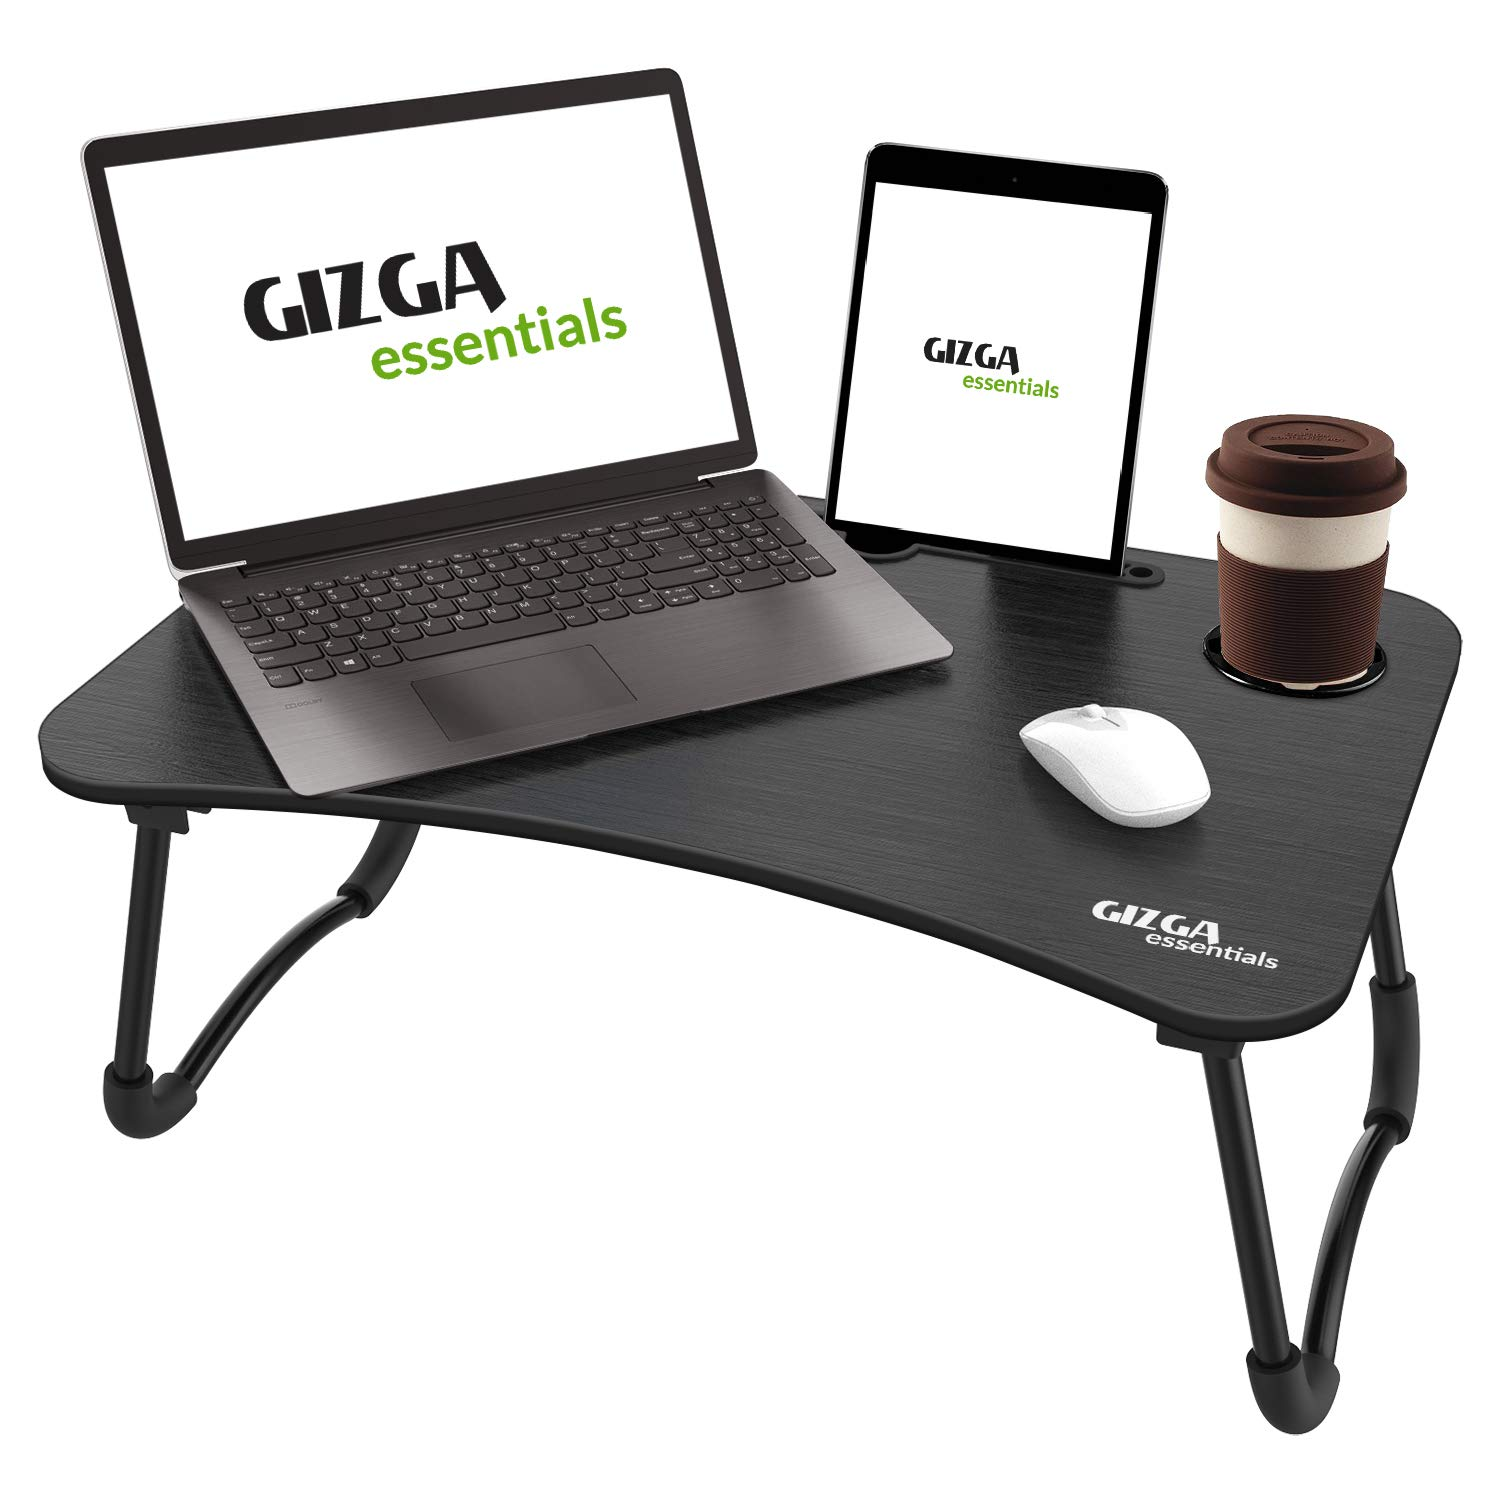 Smart Multi-Purpose Laptop Table with Dock Stand & Cup Holder